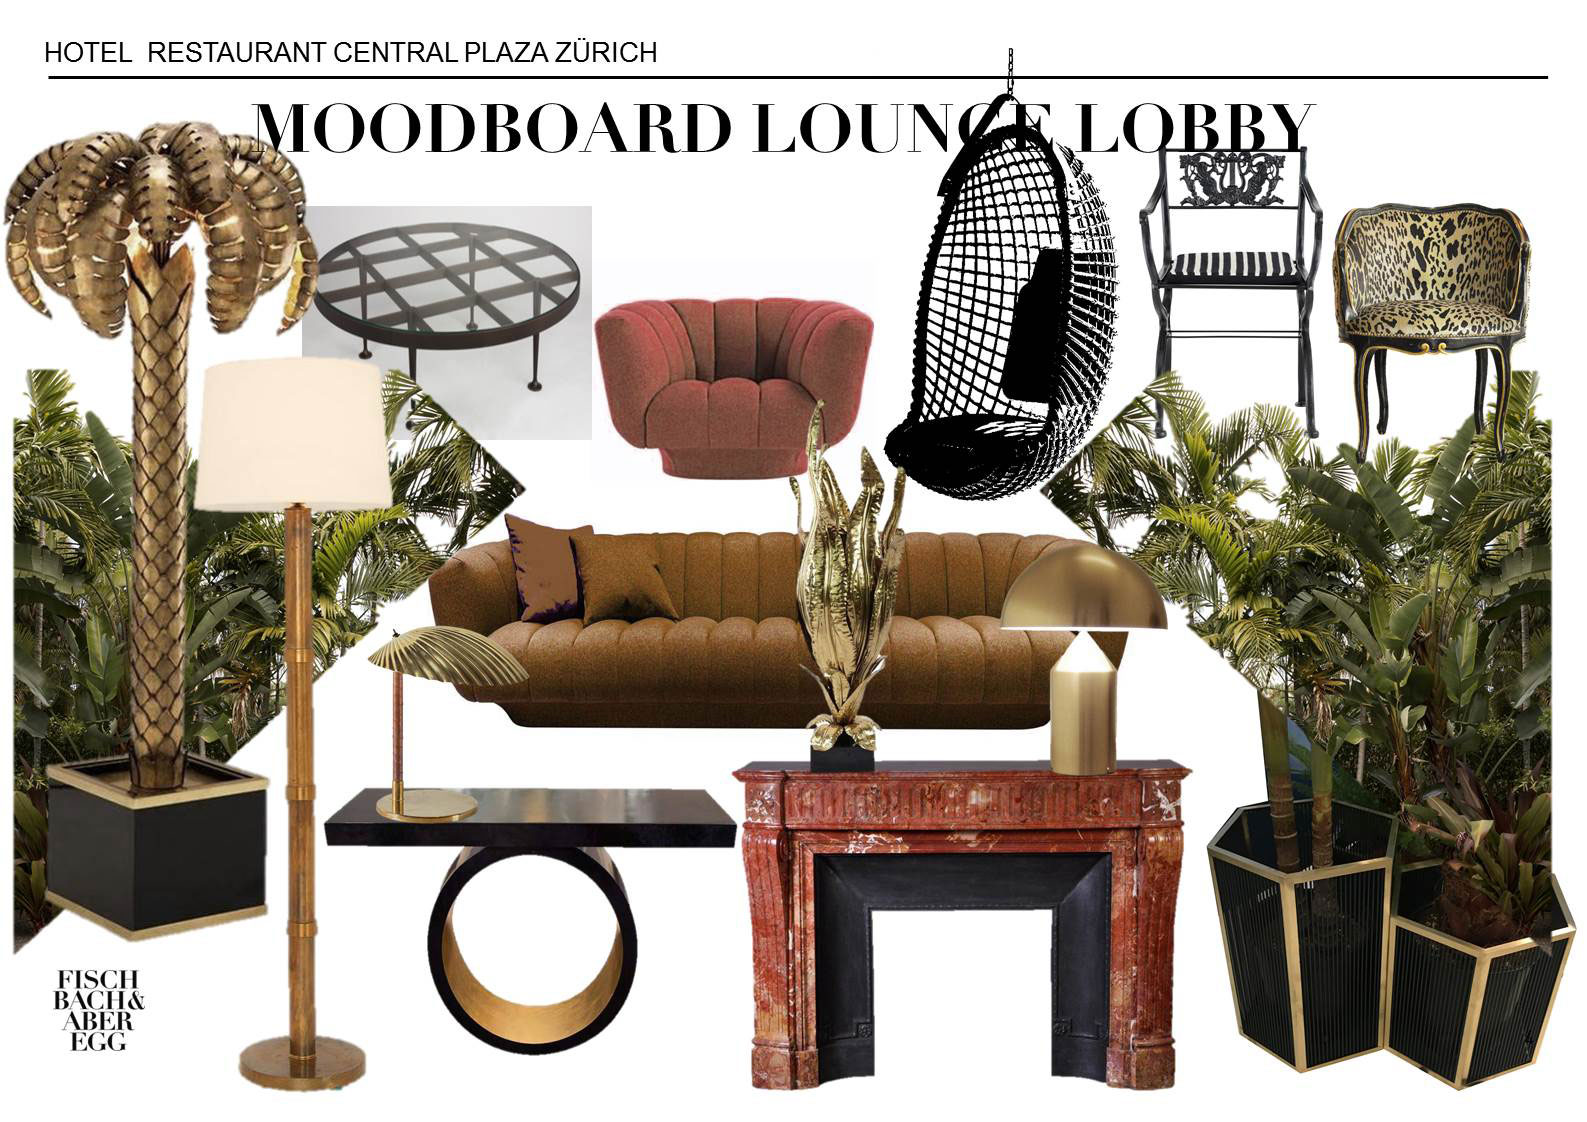 interior architect interior design hospitality retail: Moodboard Lounge Lobby